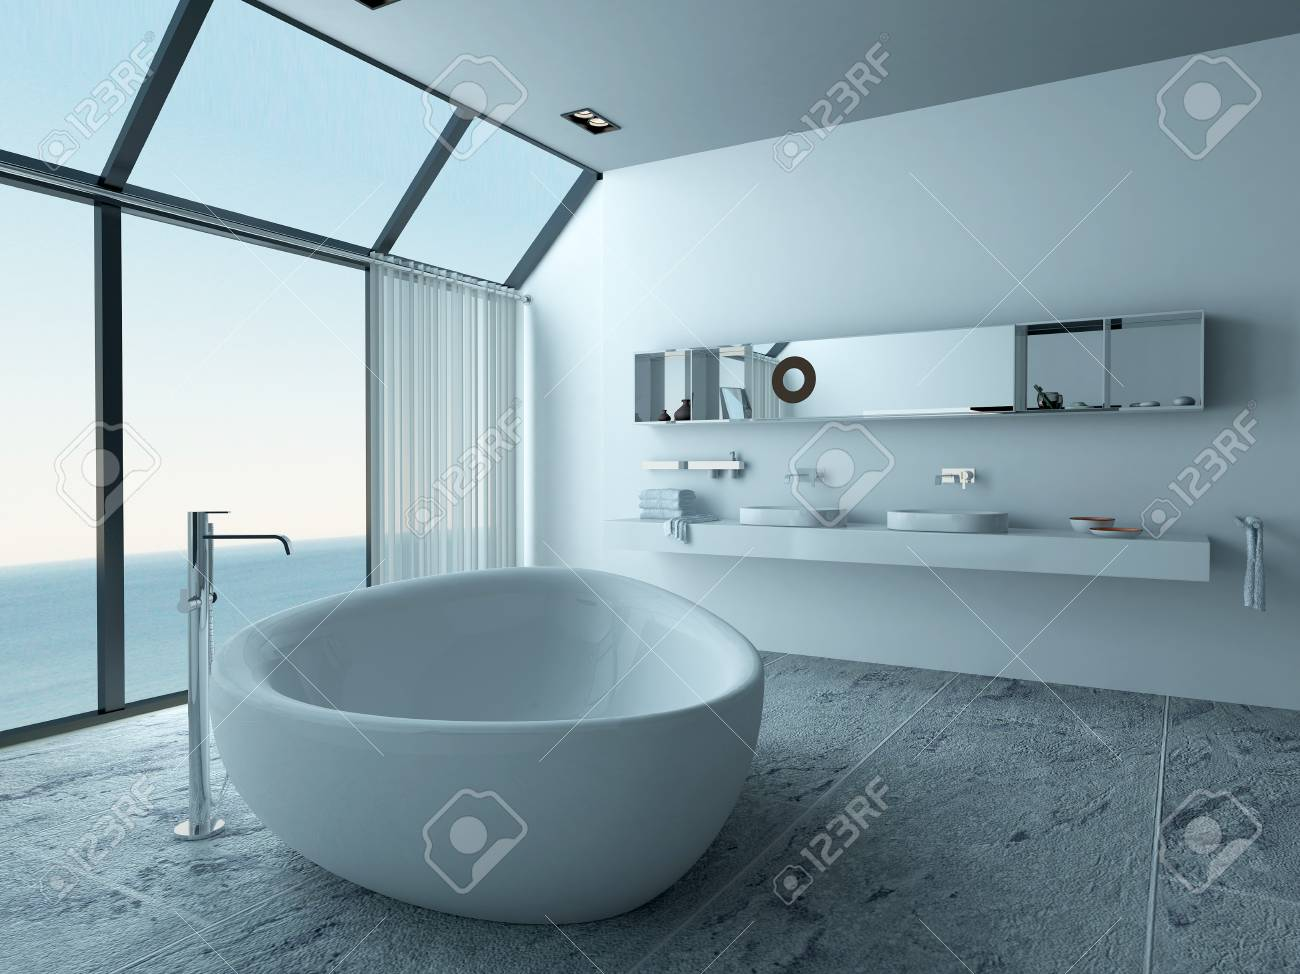 Bathroom Interior With Standalone Bathtub And Seascape View Stock Photo    28747134